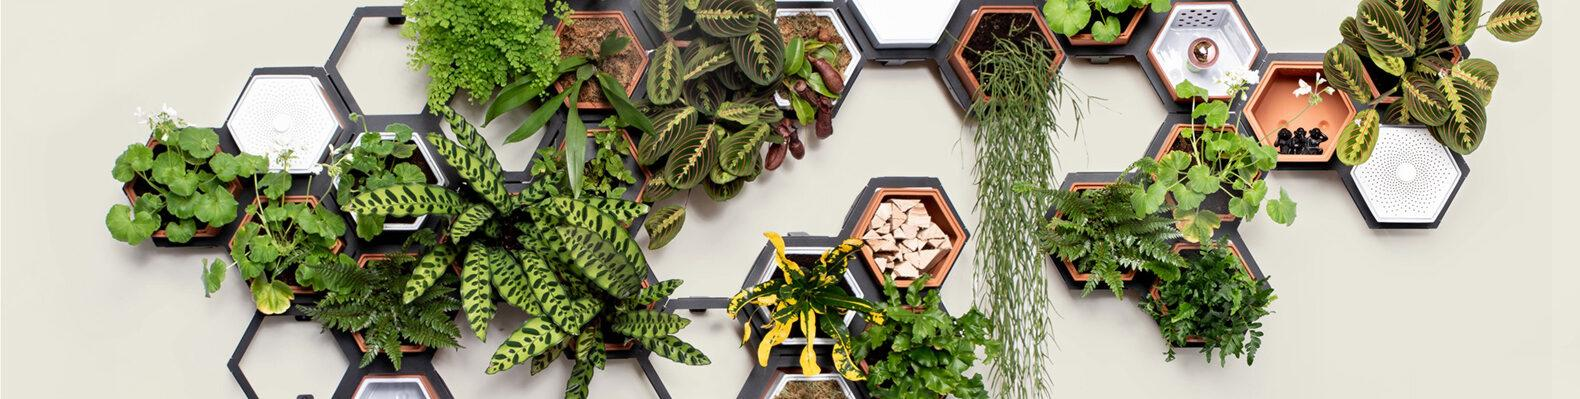 hexagon-shaped garden pods on a wall